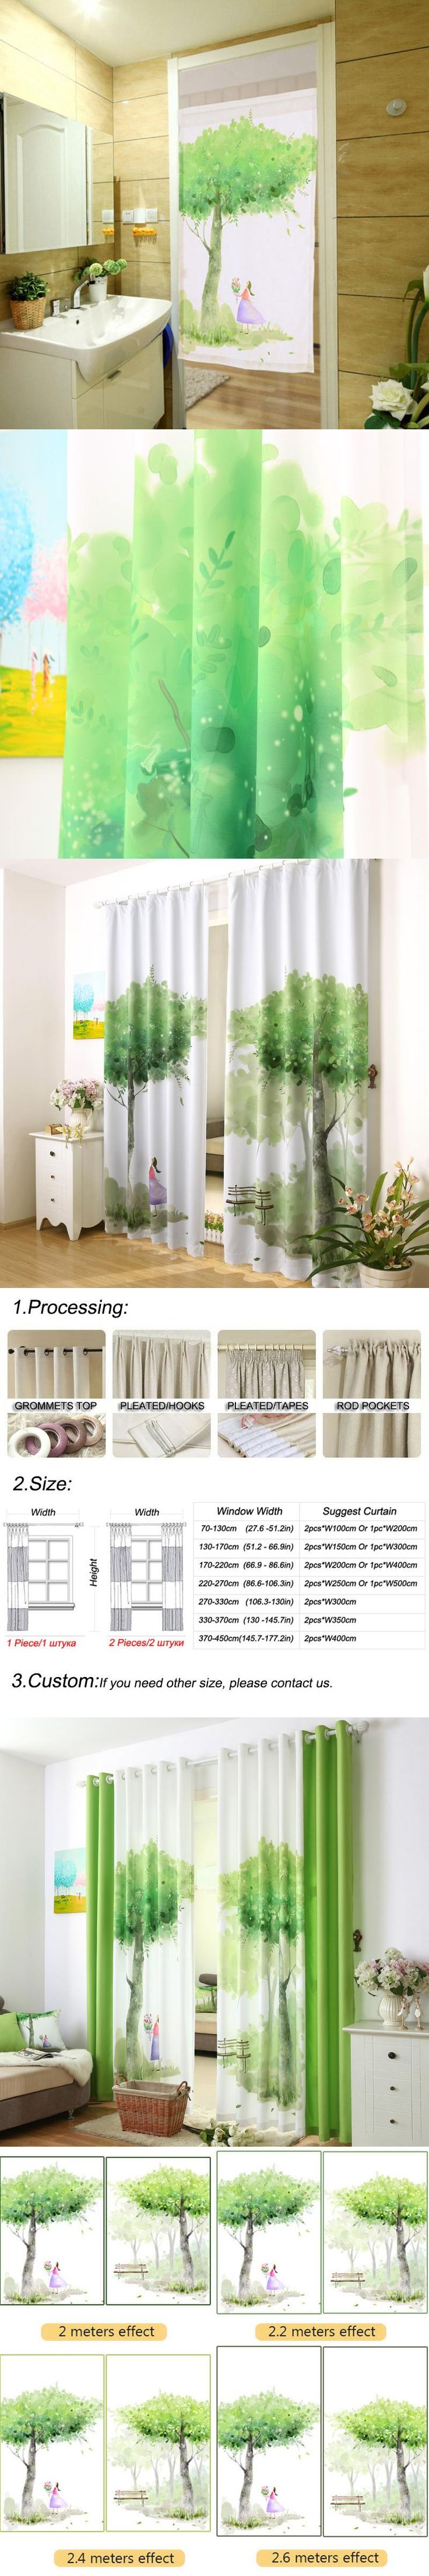 Thermal Drapes Beautiful Drape Curtains Short Thread Window Treatments Kitchen Swag Curtains Strip Curtain String Blinds Balcony